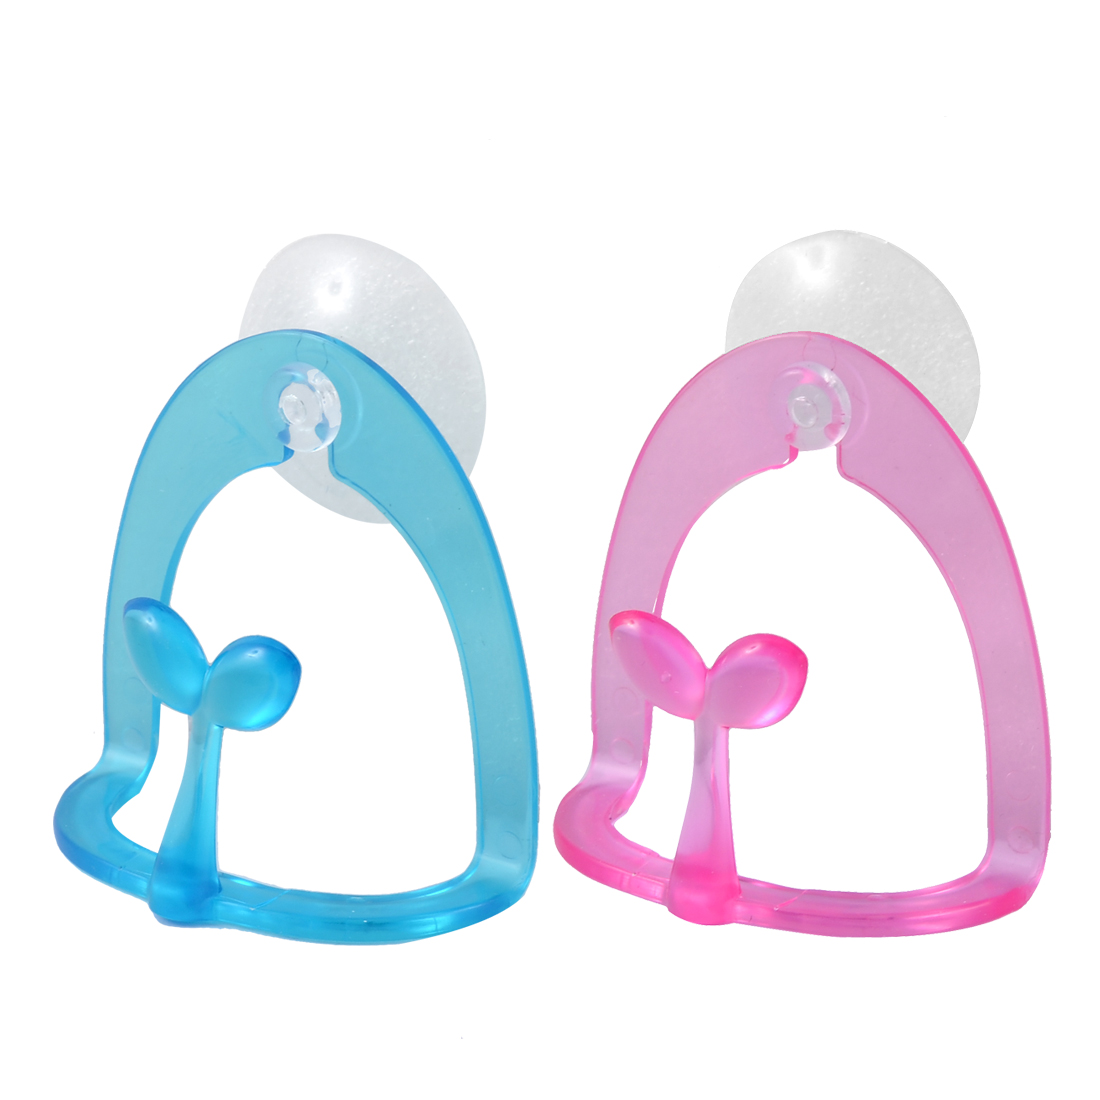 Uxcell Bathroom Wall Mounted Towel Soap Sponge Holder 2 Pcs w Suction Cup